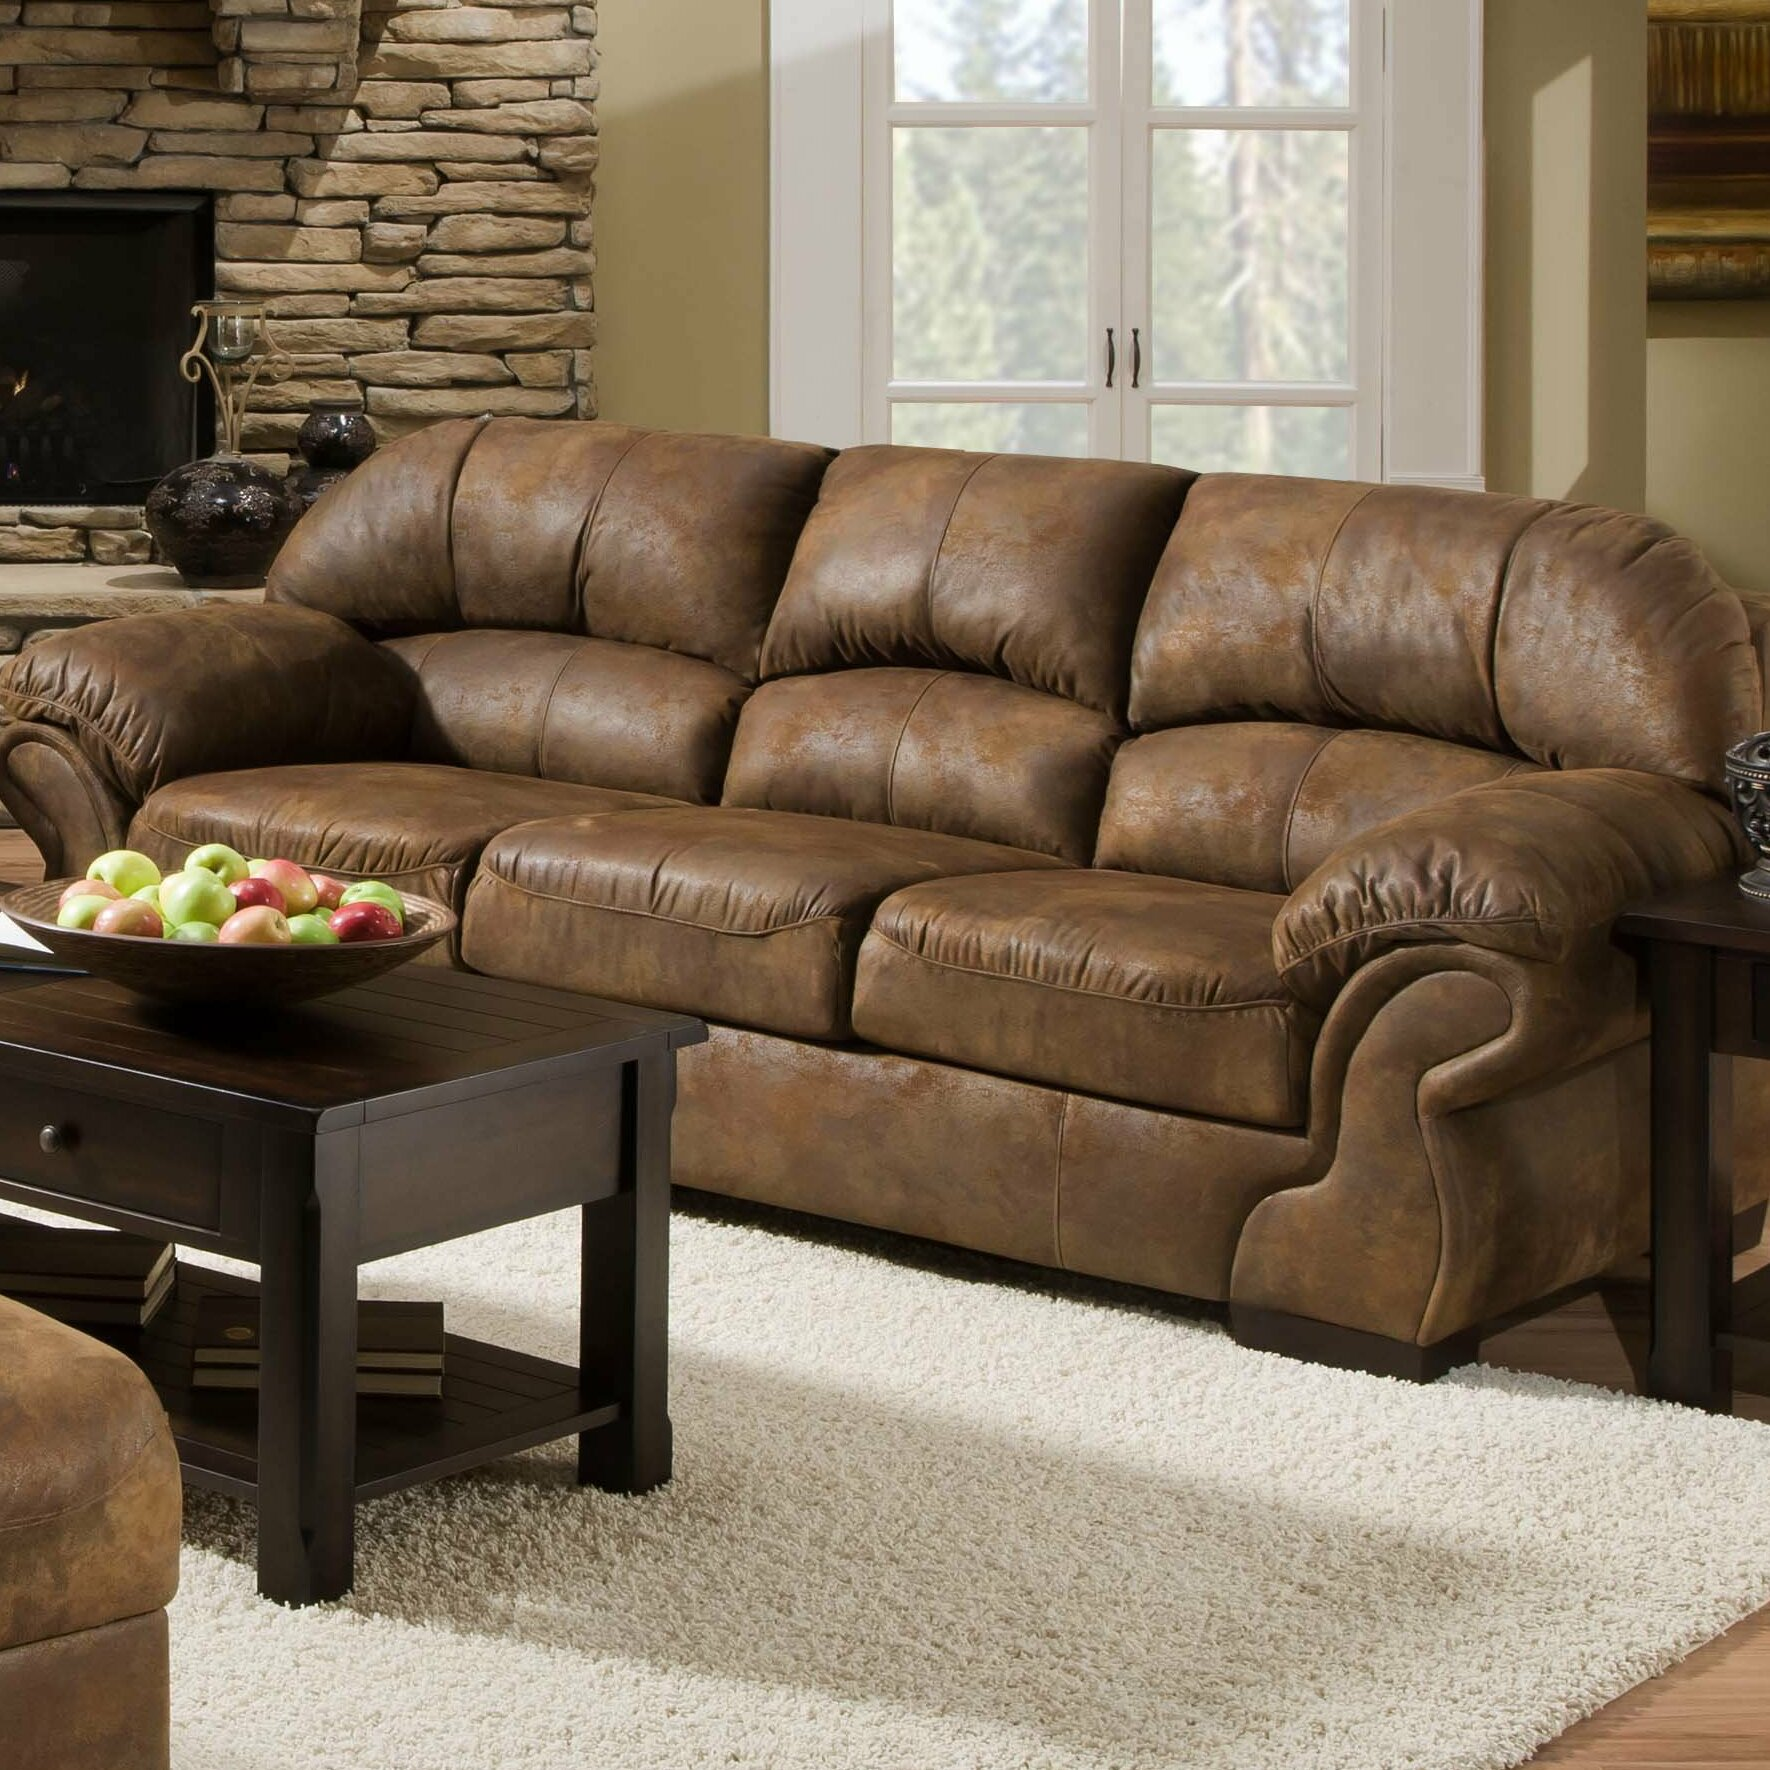 Simmons Upholstery Pinto Living Room Collection Reviews Wayfair